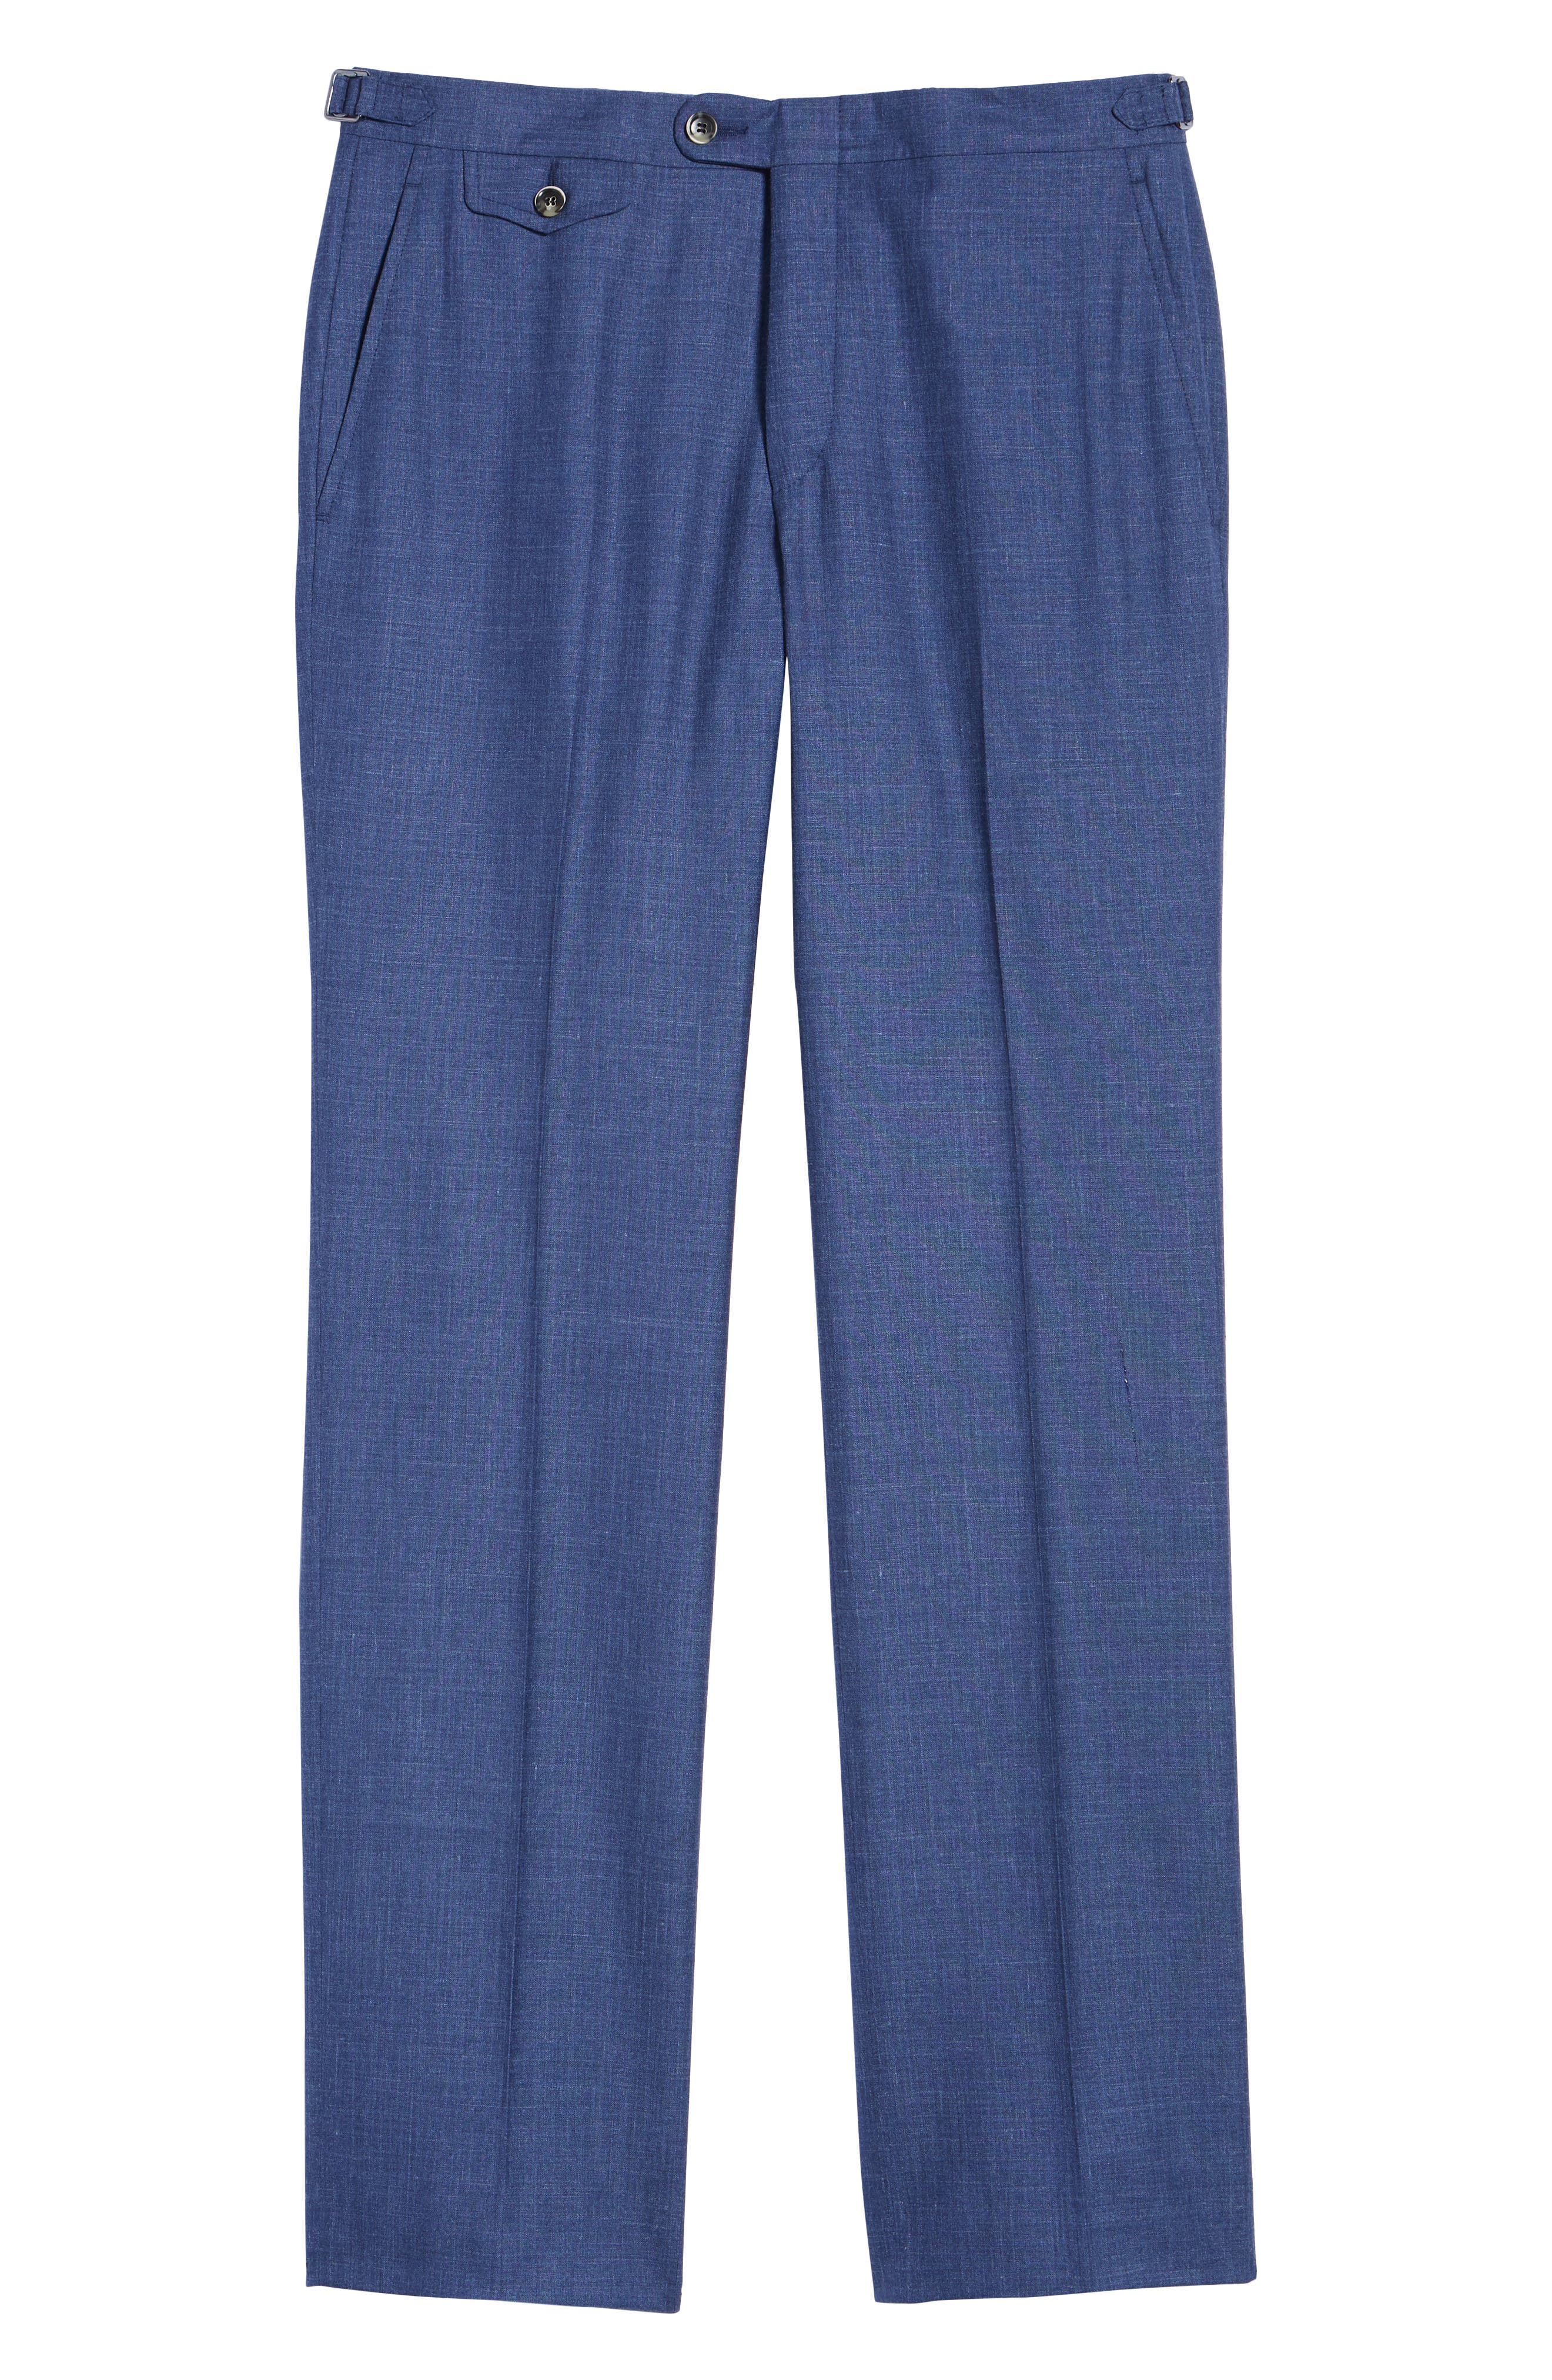 B Fit Flat Front Solid Wool Blend Trousers,                             Alternate thumbnail 6, color,                             BLUE SOLID